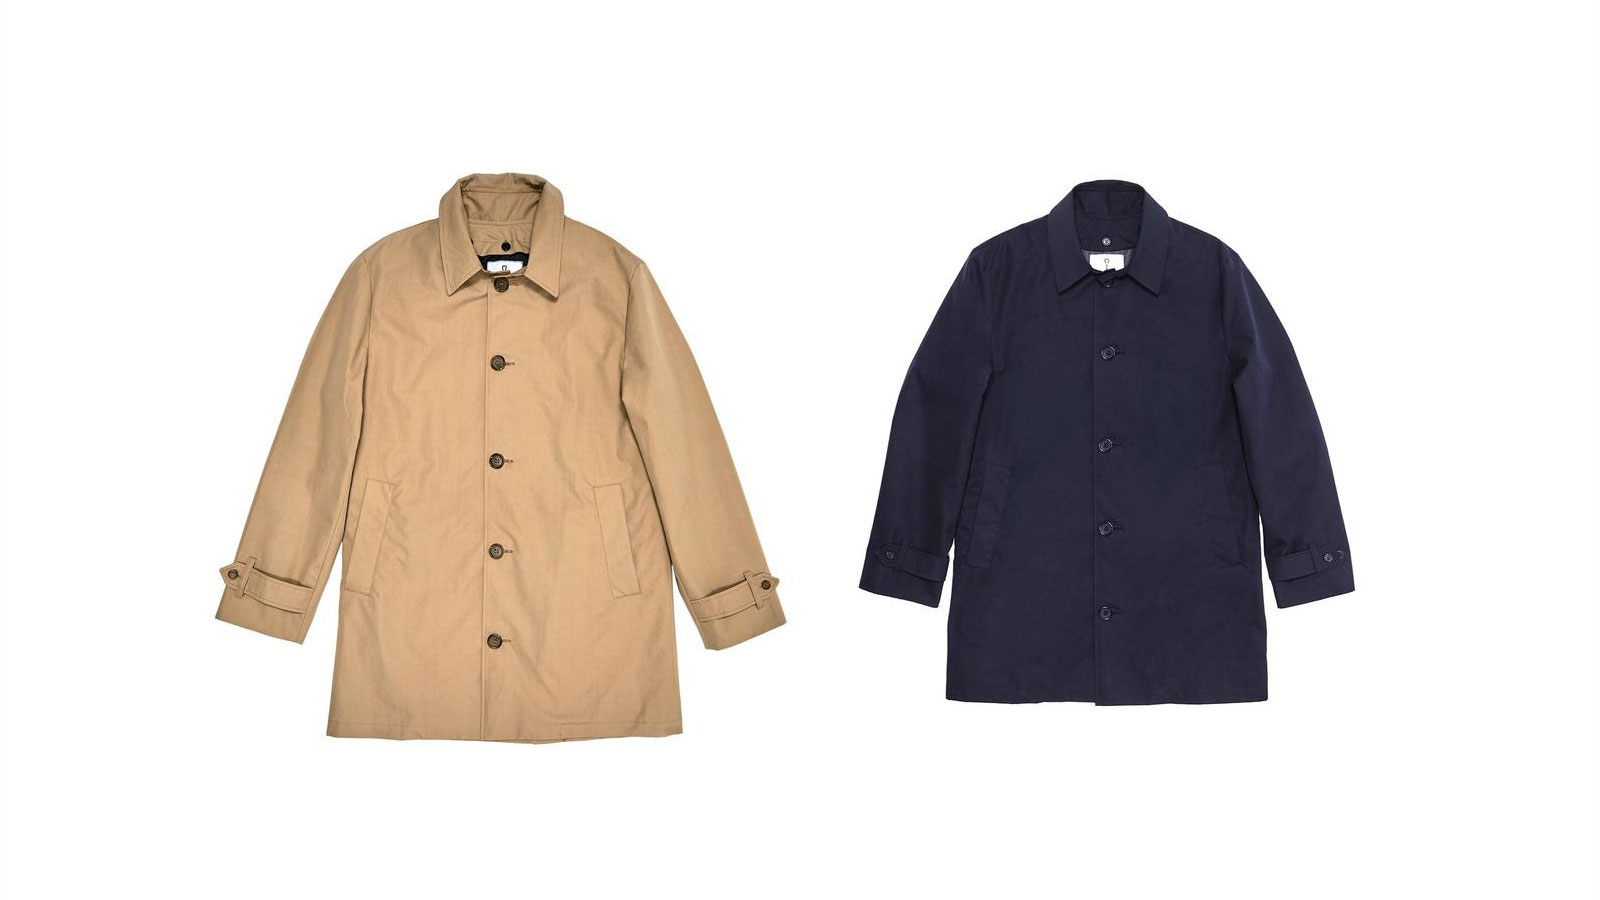 American Trench Mens Trench Coat | The Best Men's Trench Coats